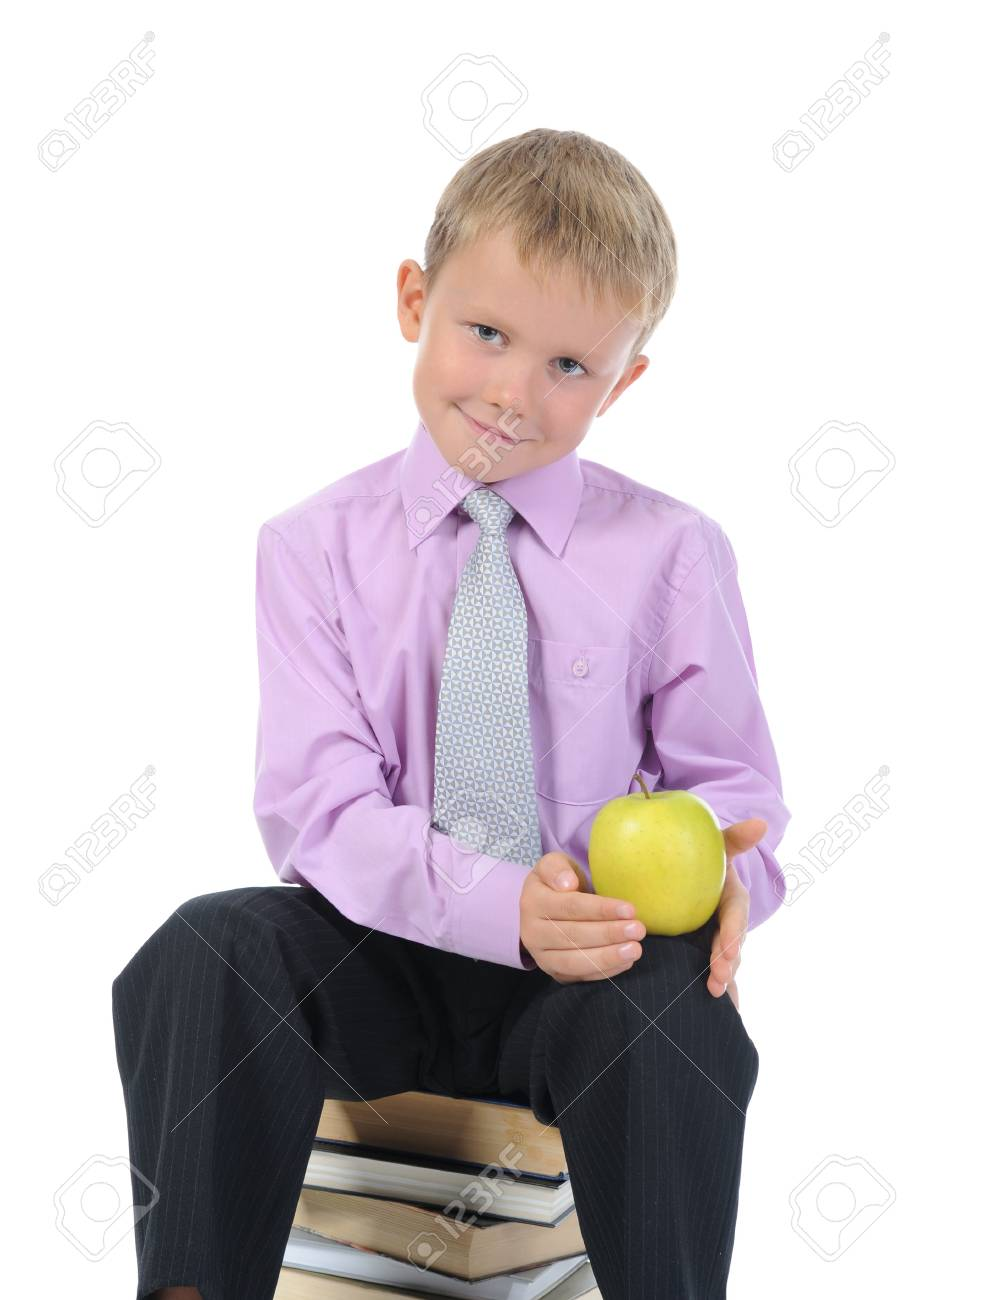 little boy with apple. Isolated on white background Stock Photo - 7799398